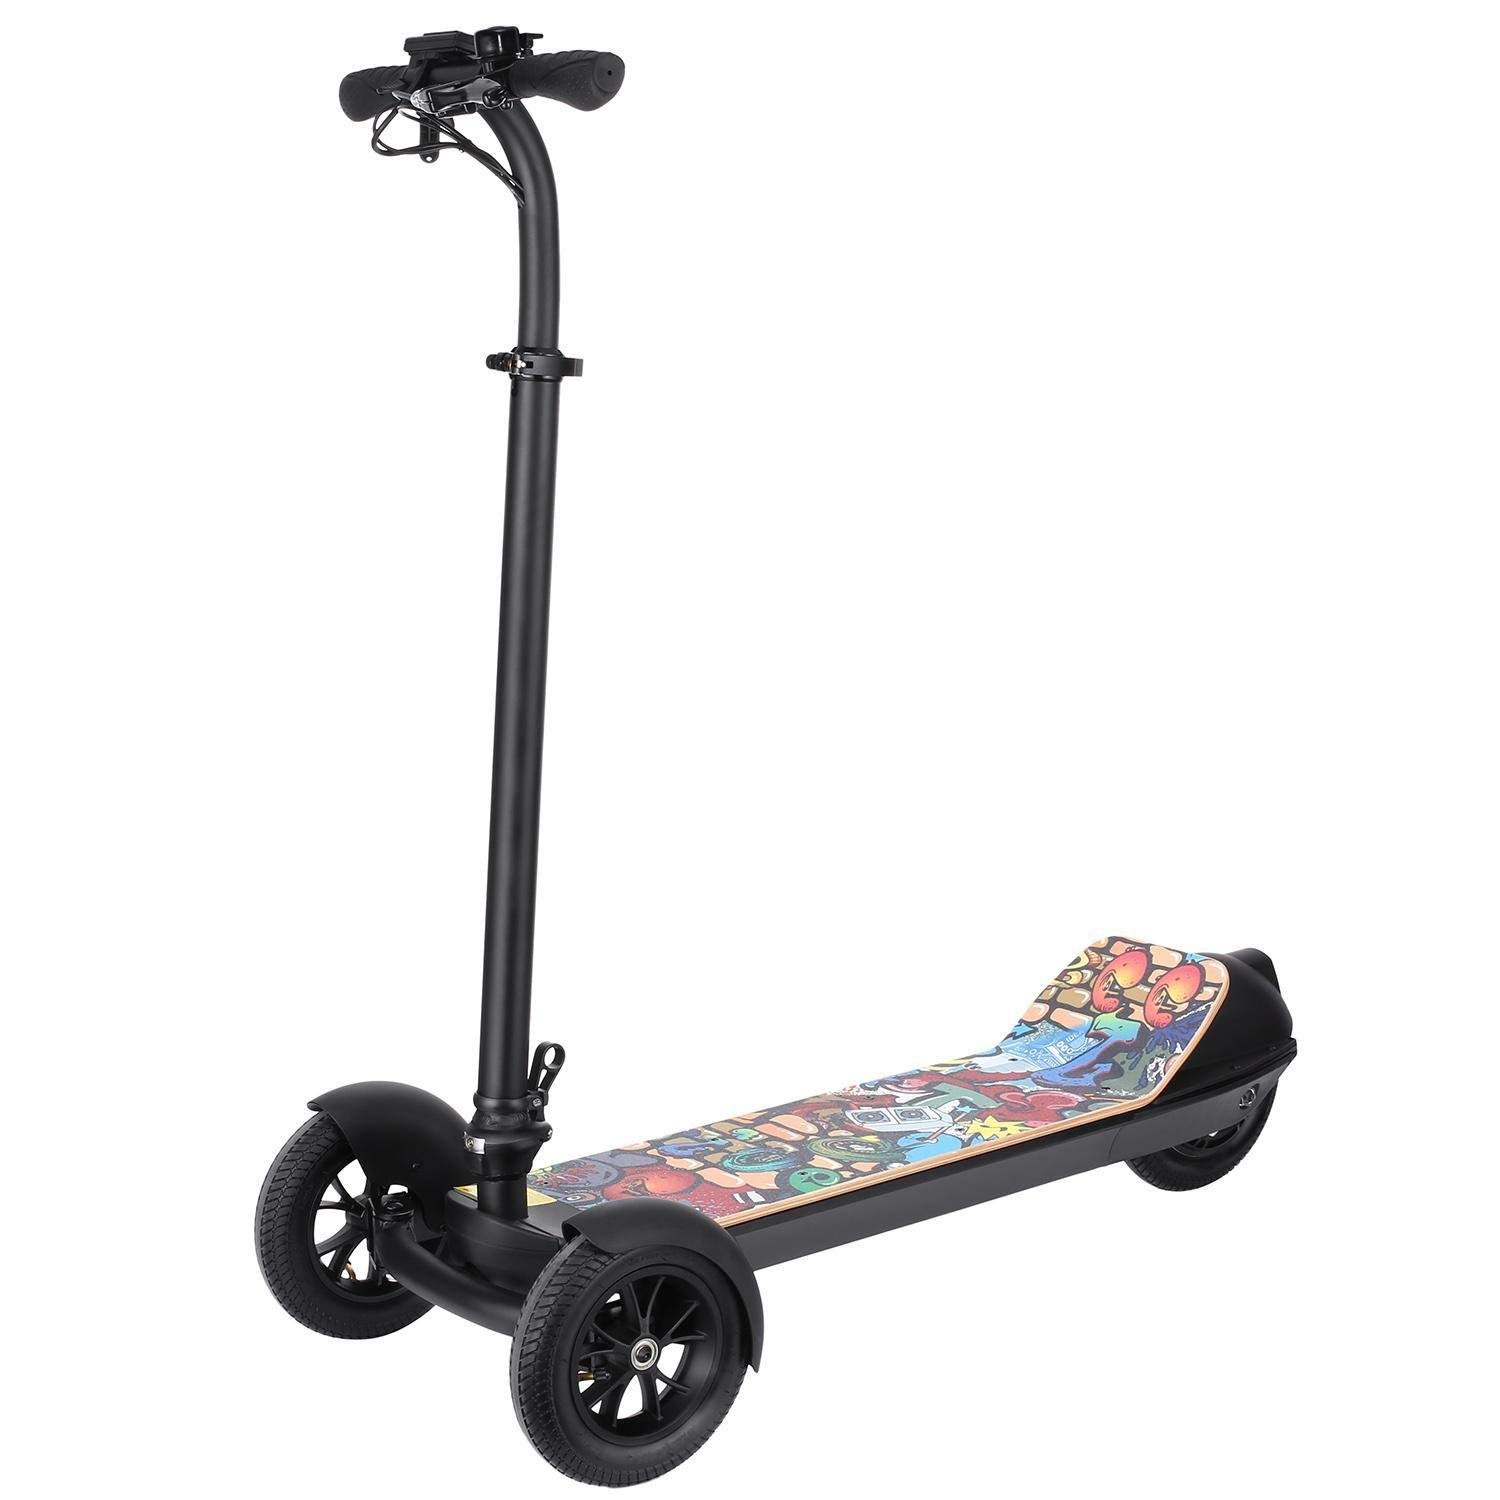 TelDen Folding Electric Scooter 3 Wheel Electric Scooter Cheap Electric Scooters Vests